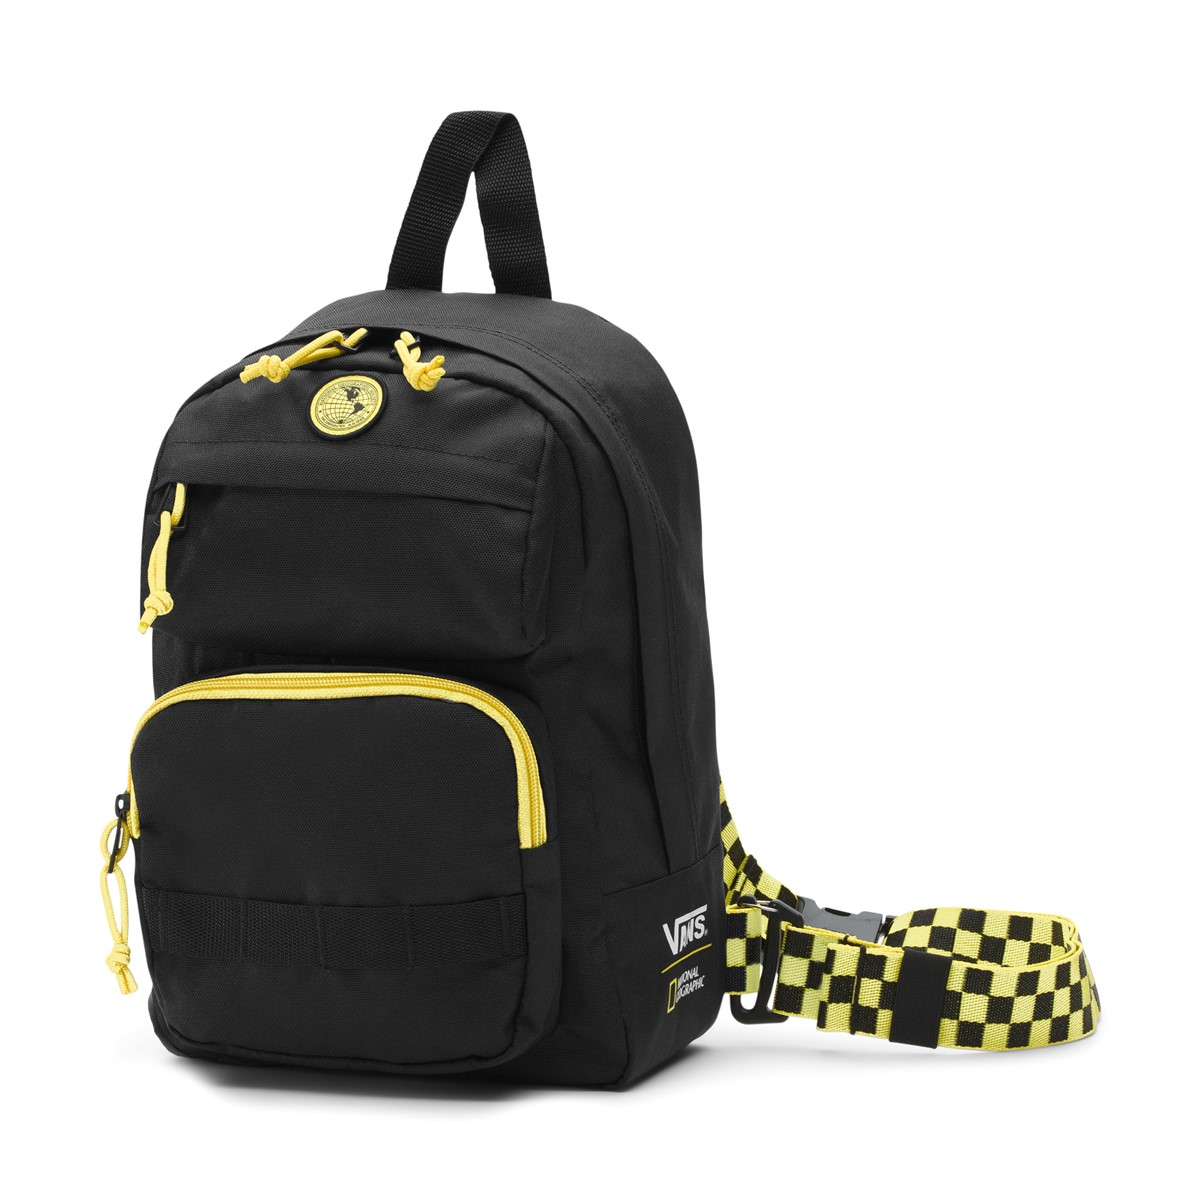 National Geographic Backpack in Black